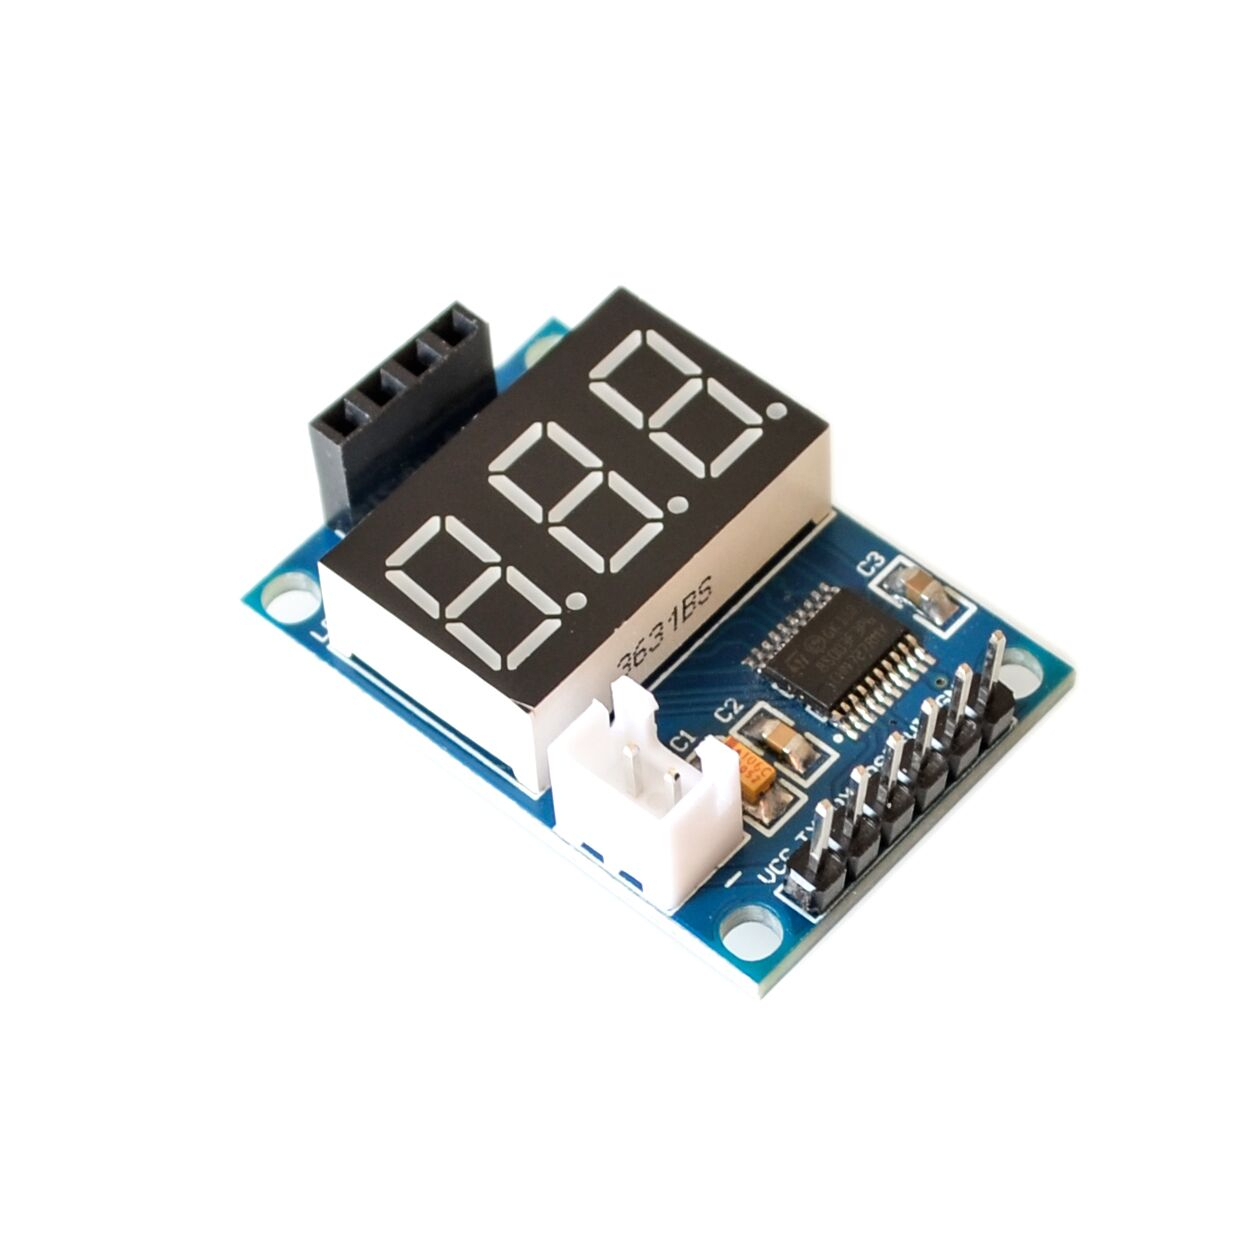 Ultrasonic distance measurement module test board to provide 5V test board test HC-SR04 display range finder